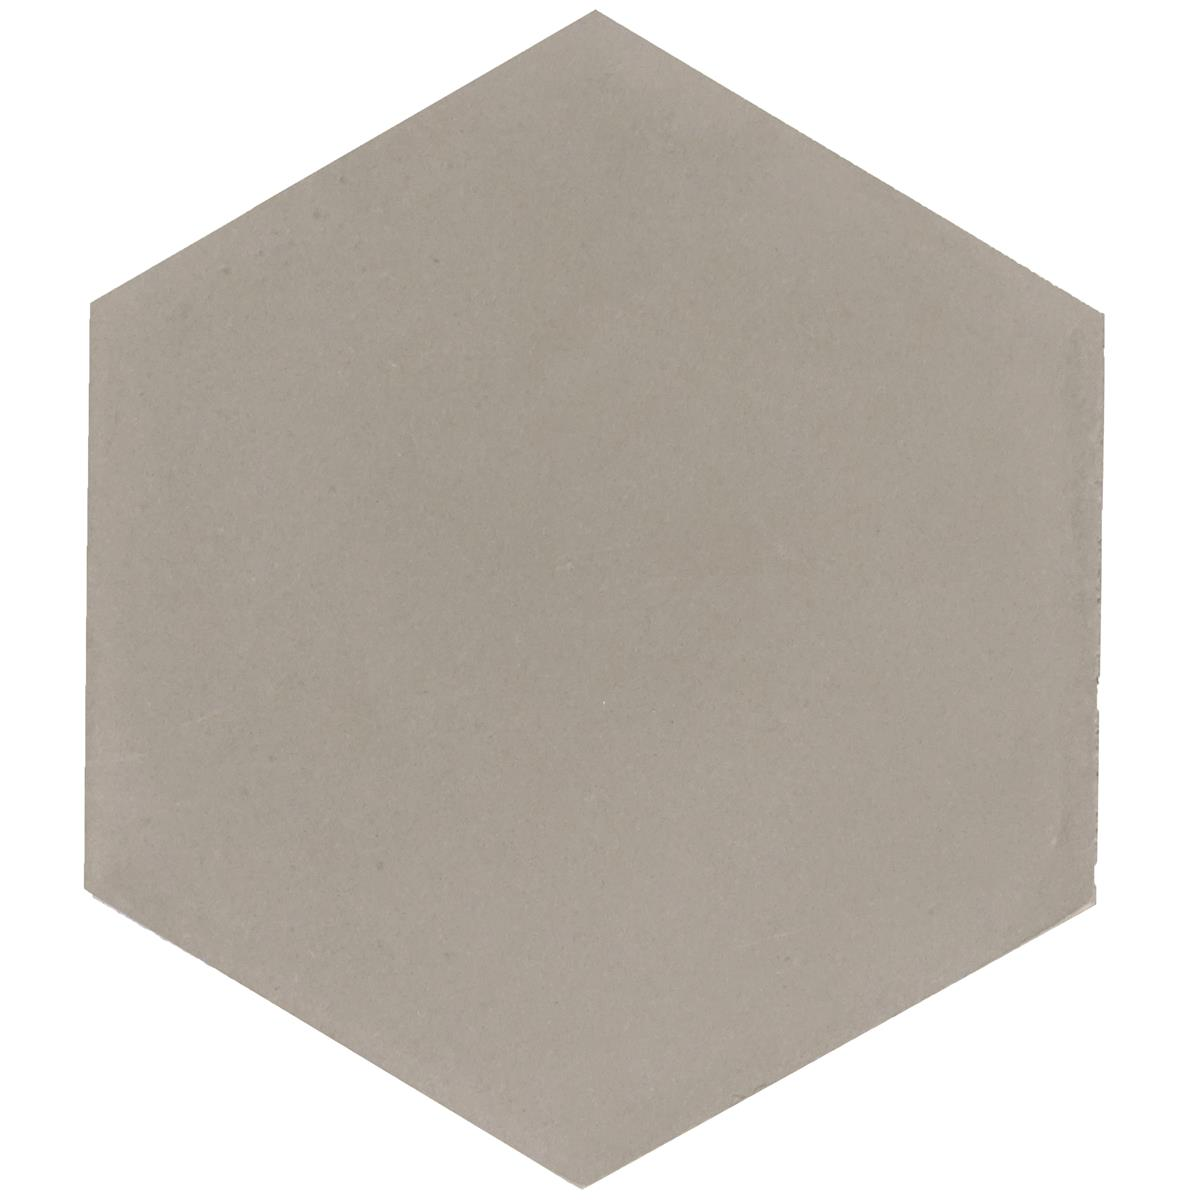 Hexagon Sand-Grey 17,4x15x1,6 cm